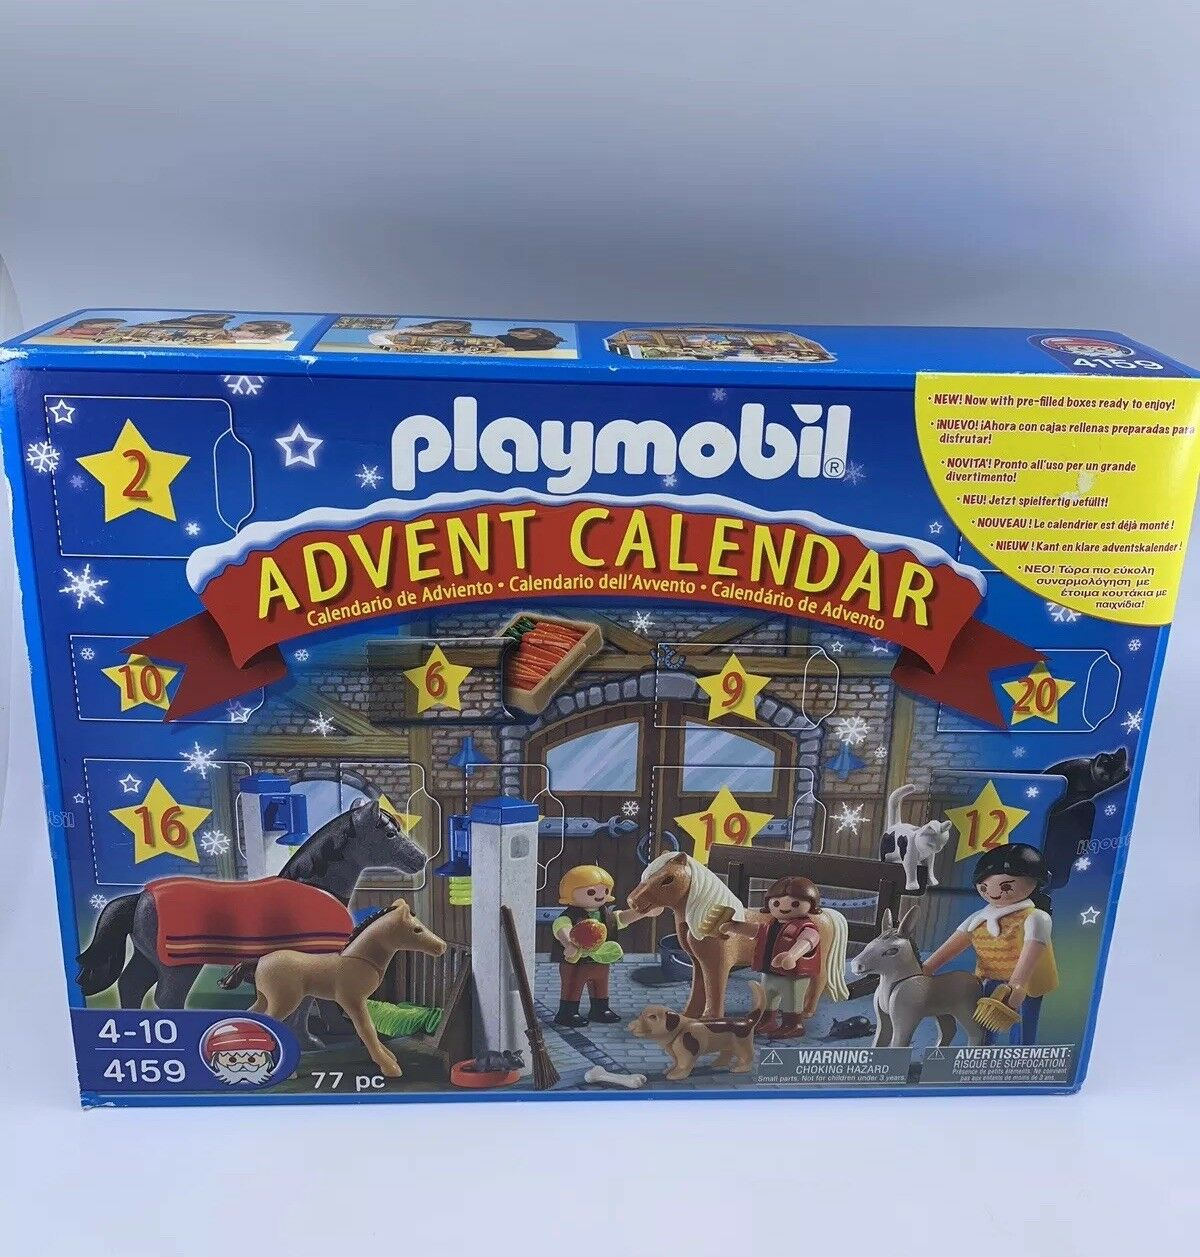 NEUF 2008 Playmobil  4159 Advent Calendar-Hard to Find 77pc Holiday Set  FACTORY SEALED  magasin d'offre